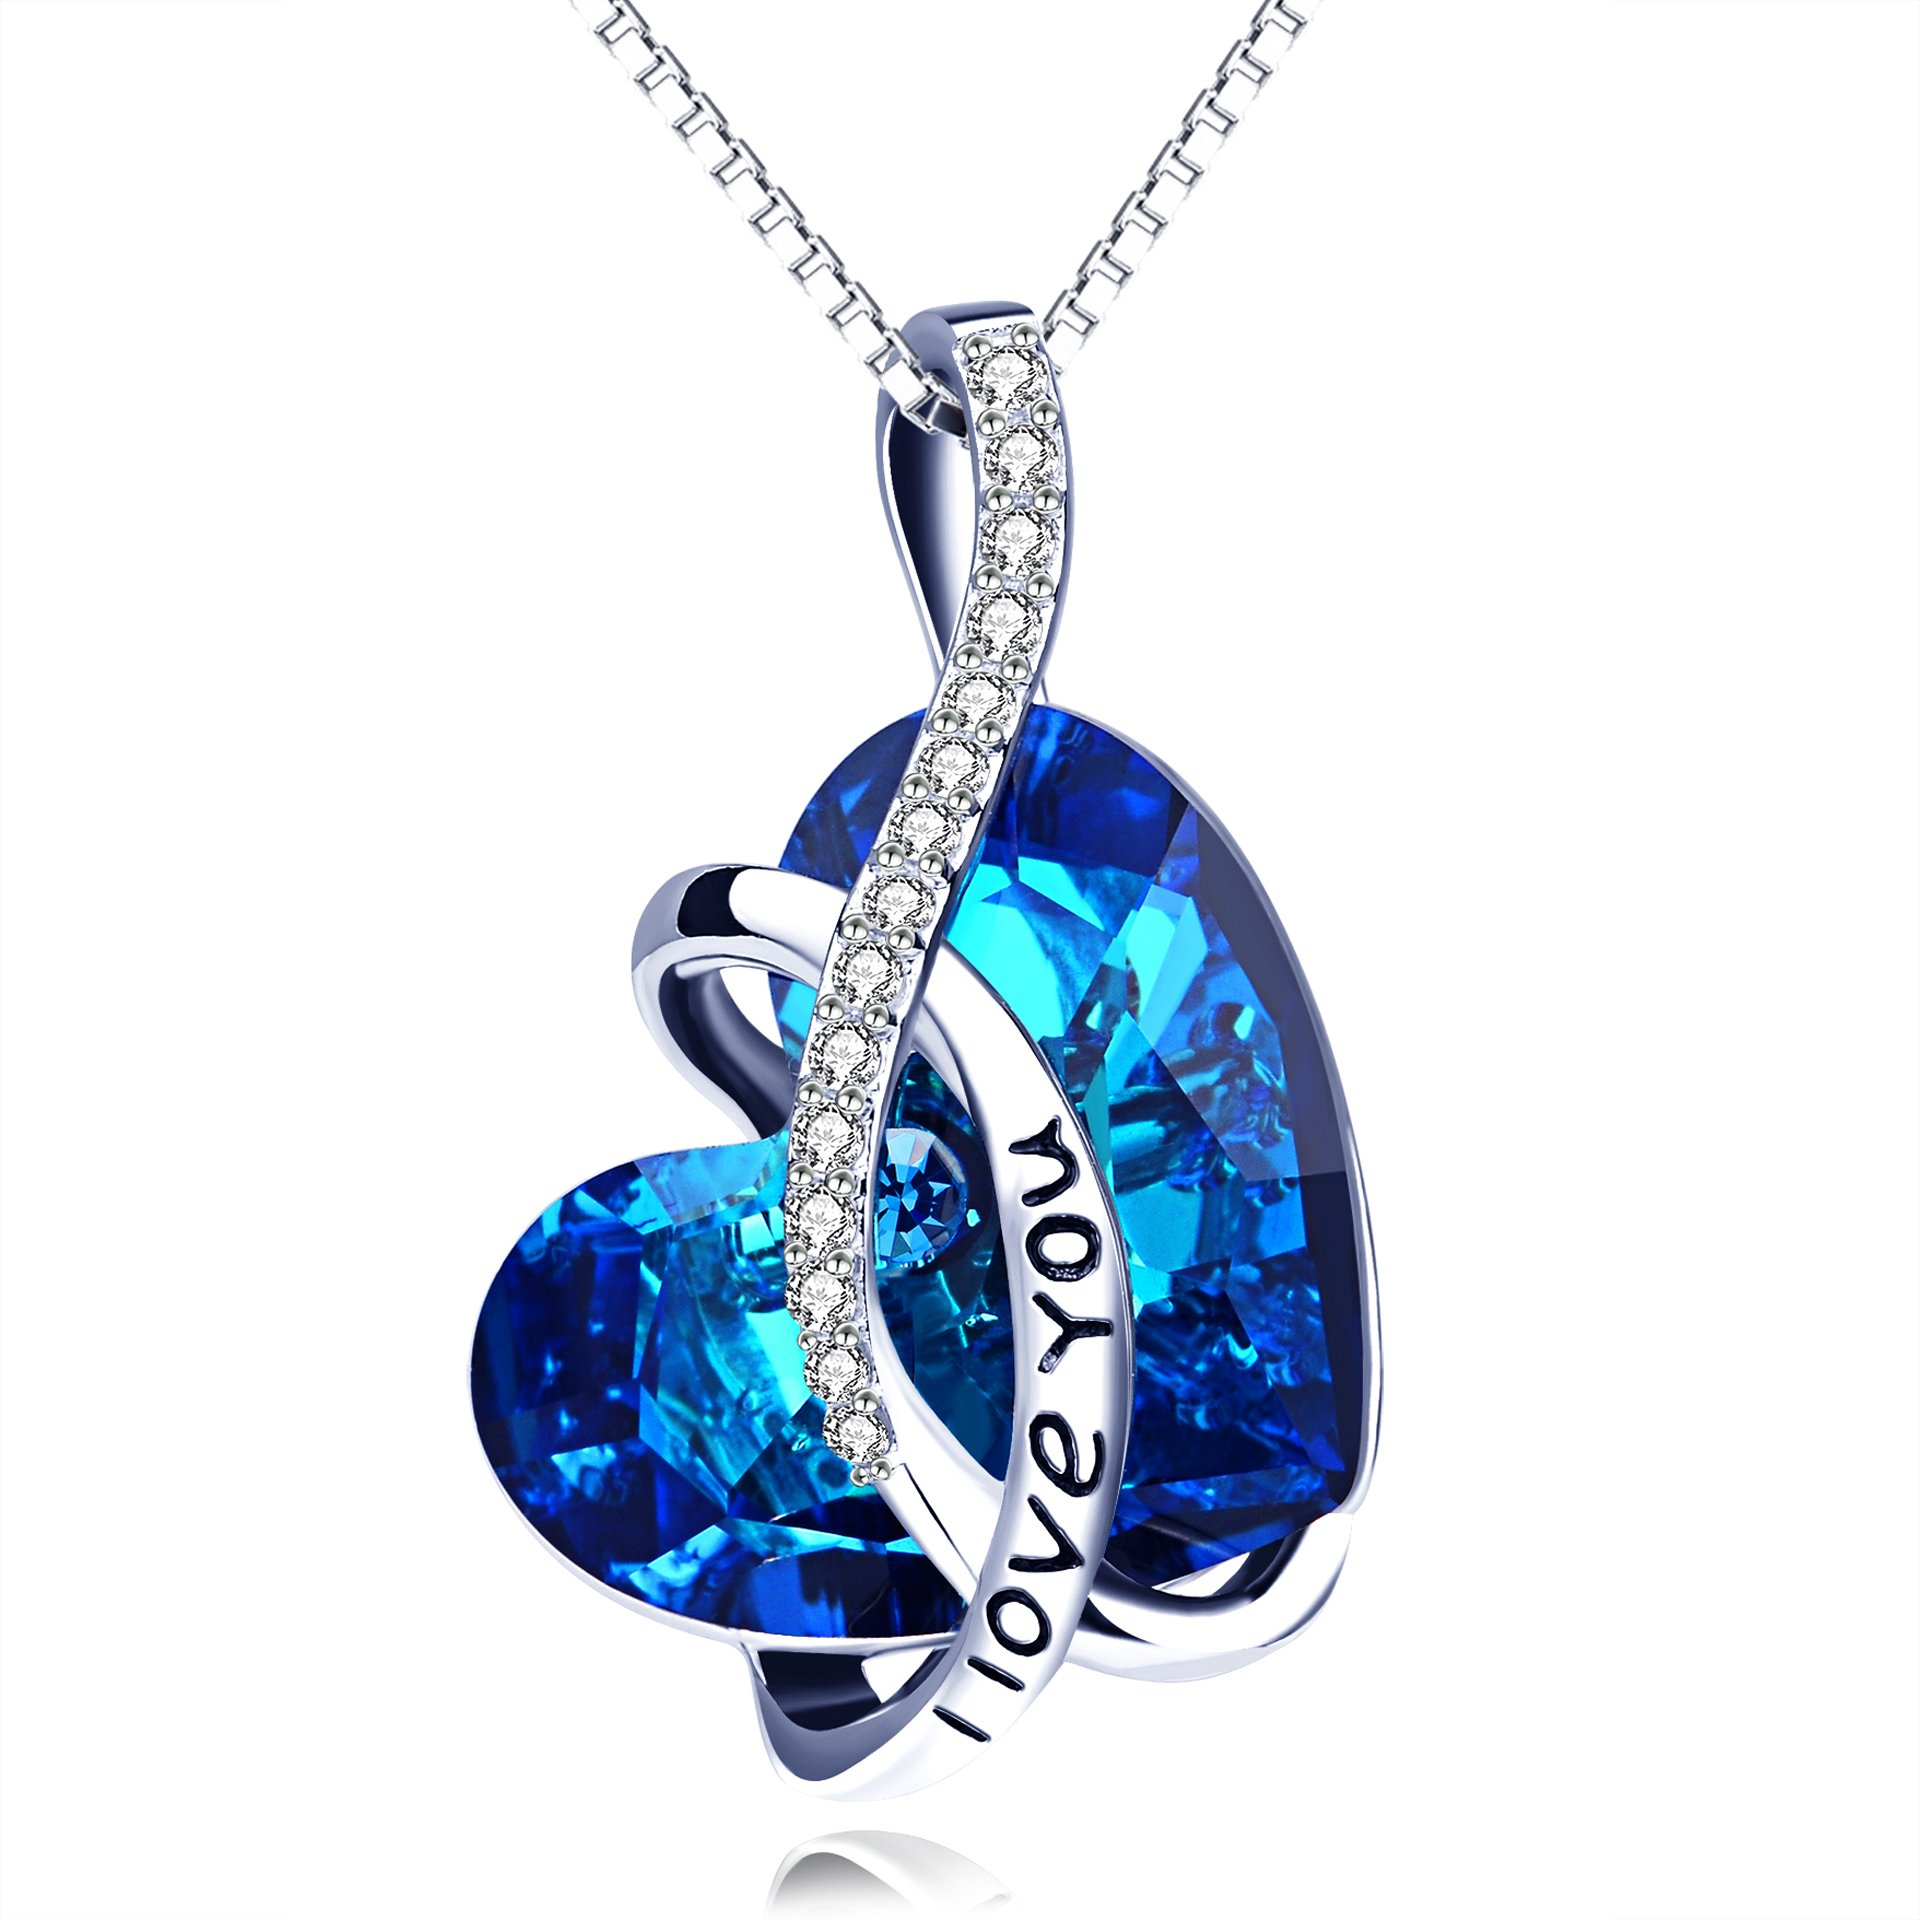 AOBOCO Jewelry I Love You Sterling Silver Heart Pendant Necklace for Girls with Blue Crystals from Swarovski Anniversary Birthday Gift for Women Girlfriend Wife Daughter Mother Sister Niece